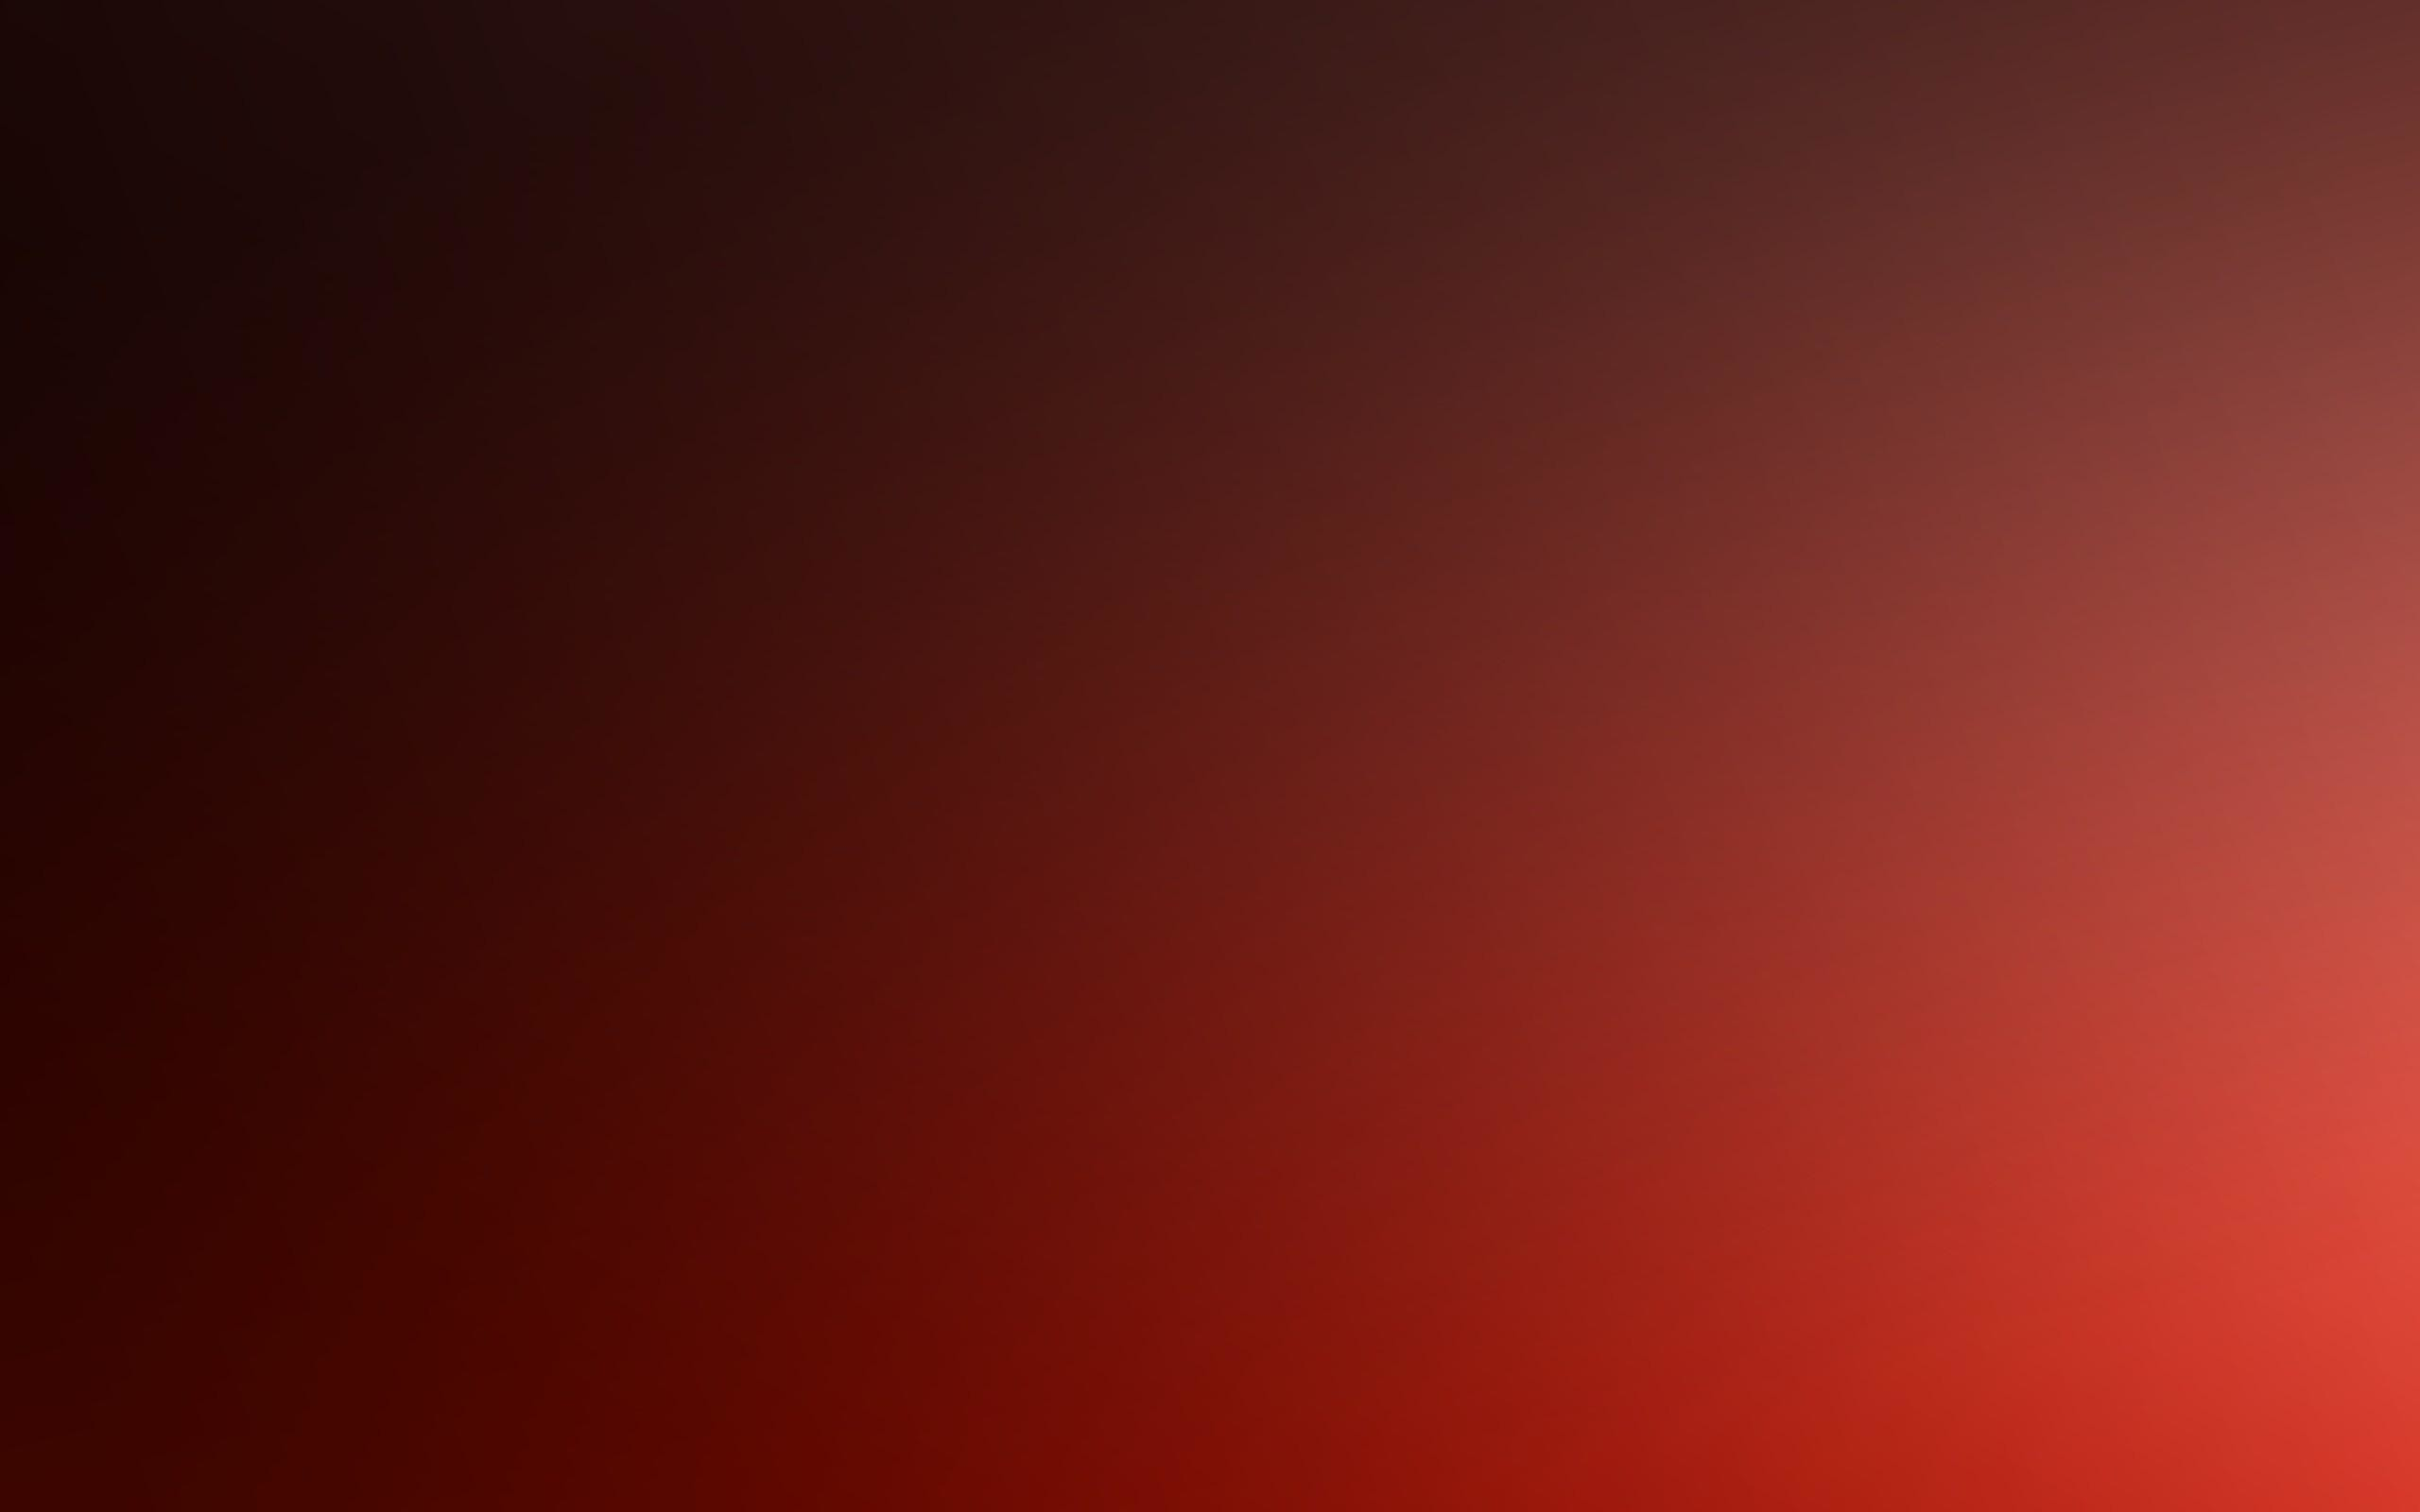 Wallpapers For > Dark Red Background Designs